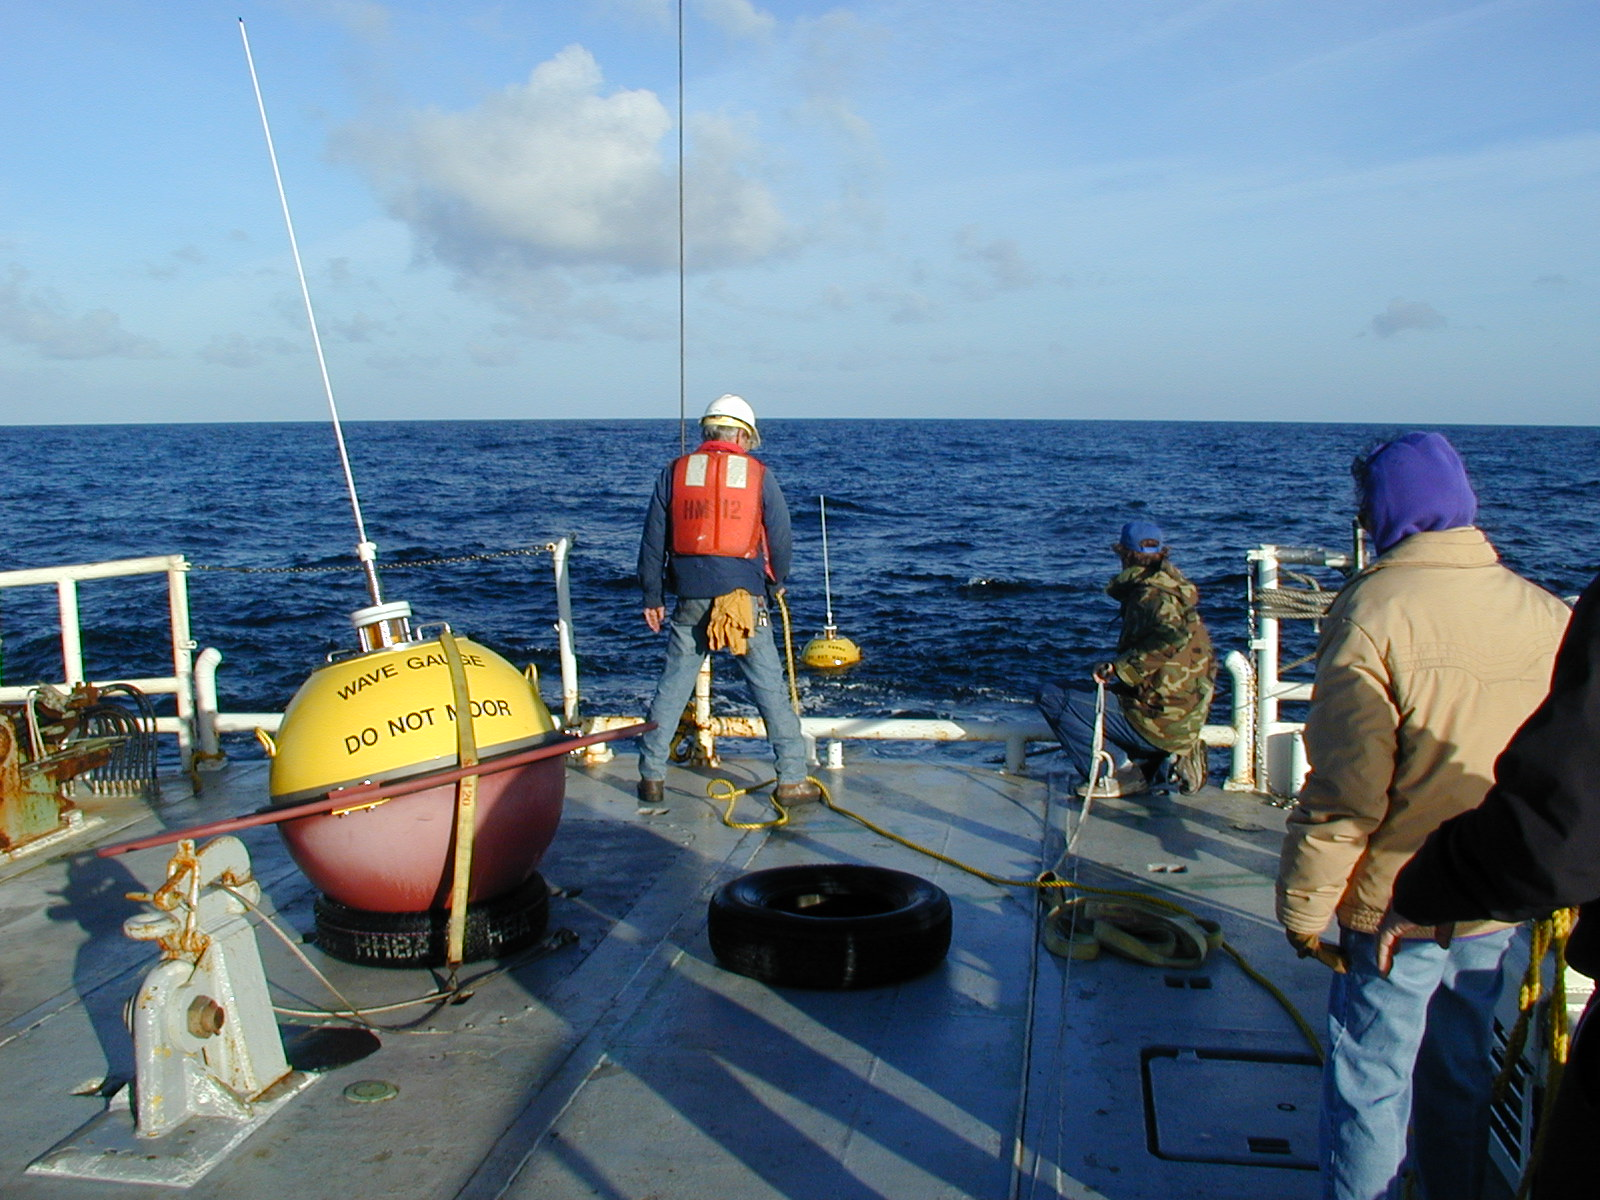 View off stern of ship during buoy deployment